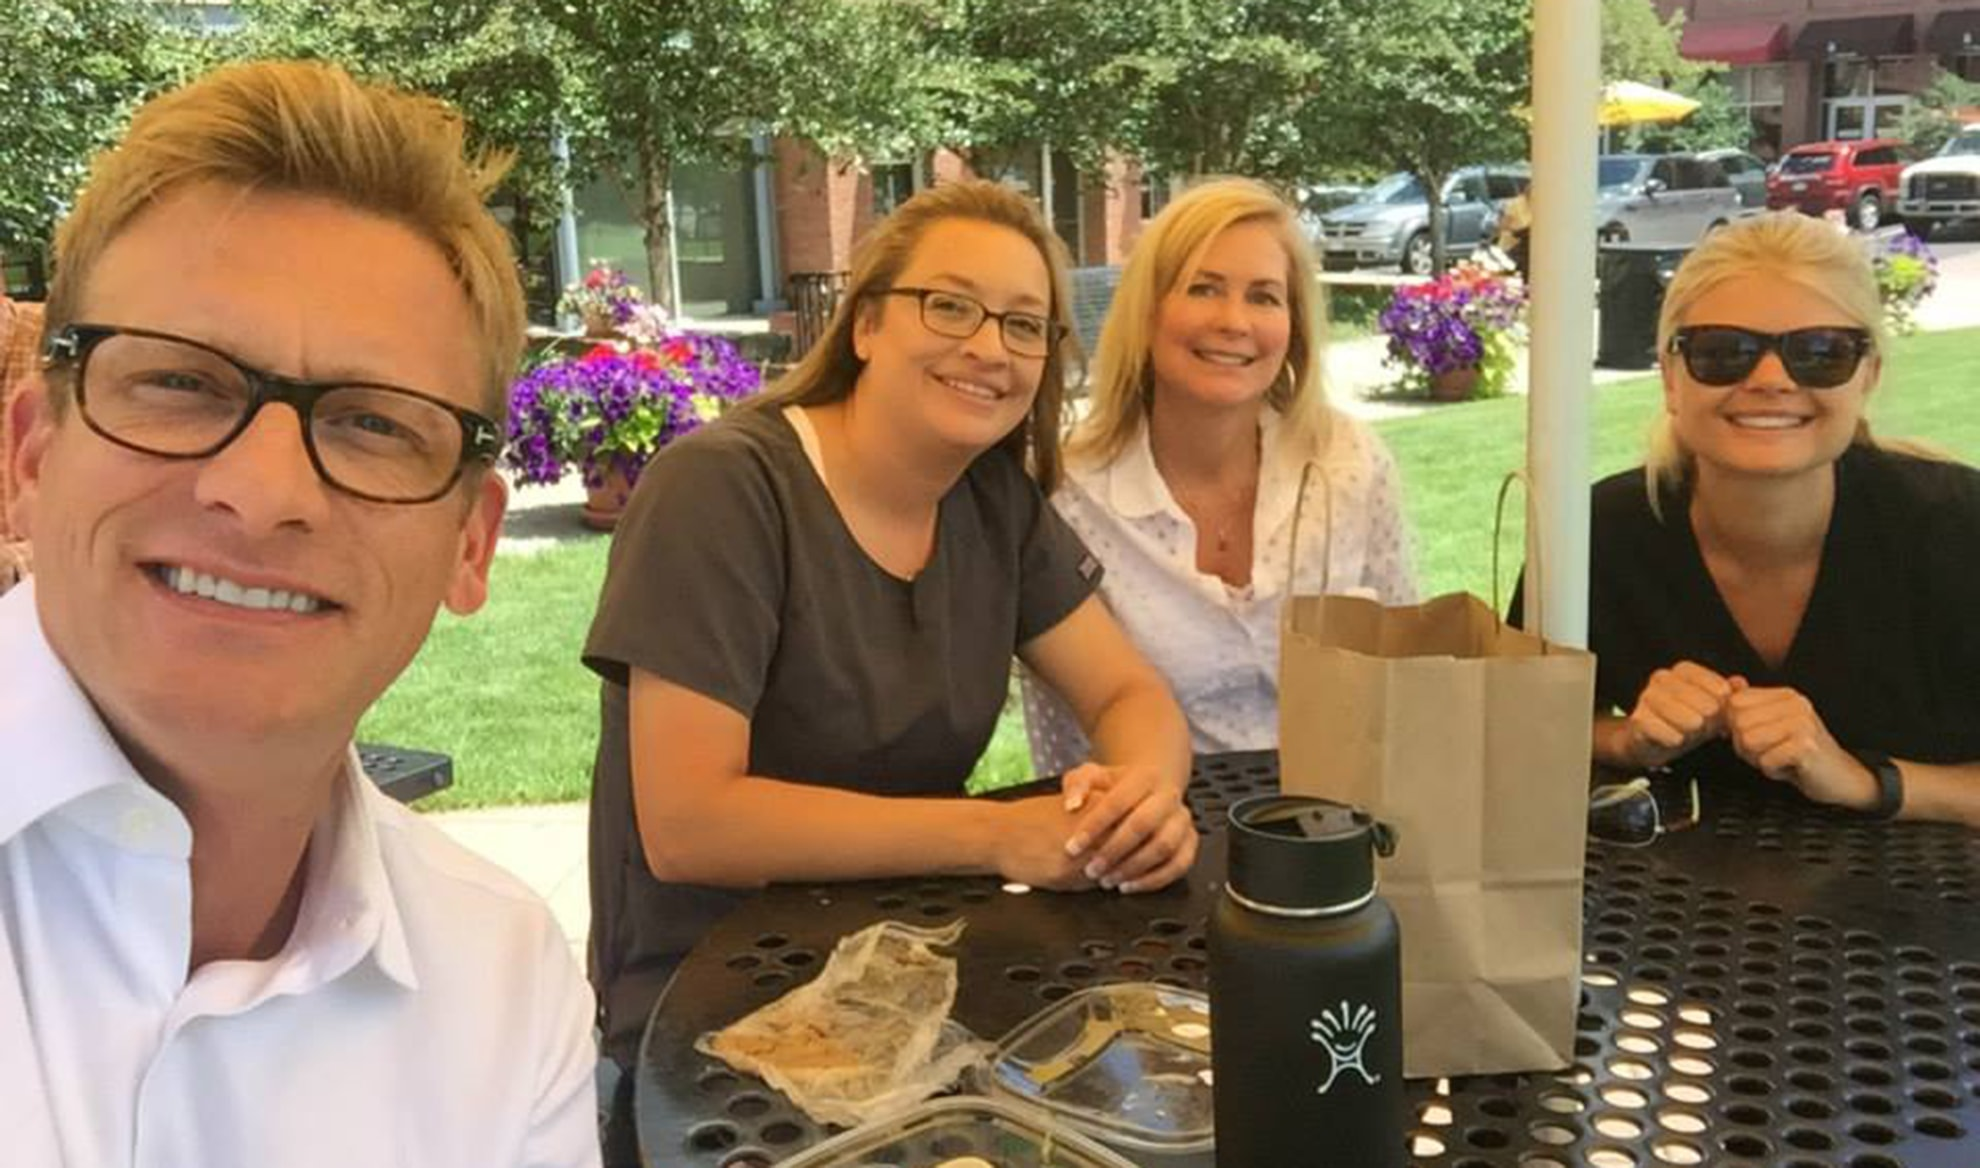 The Vail Dentistry team having lunch in the Edwards community